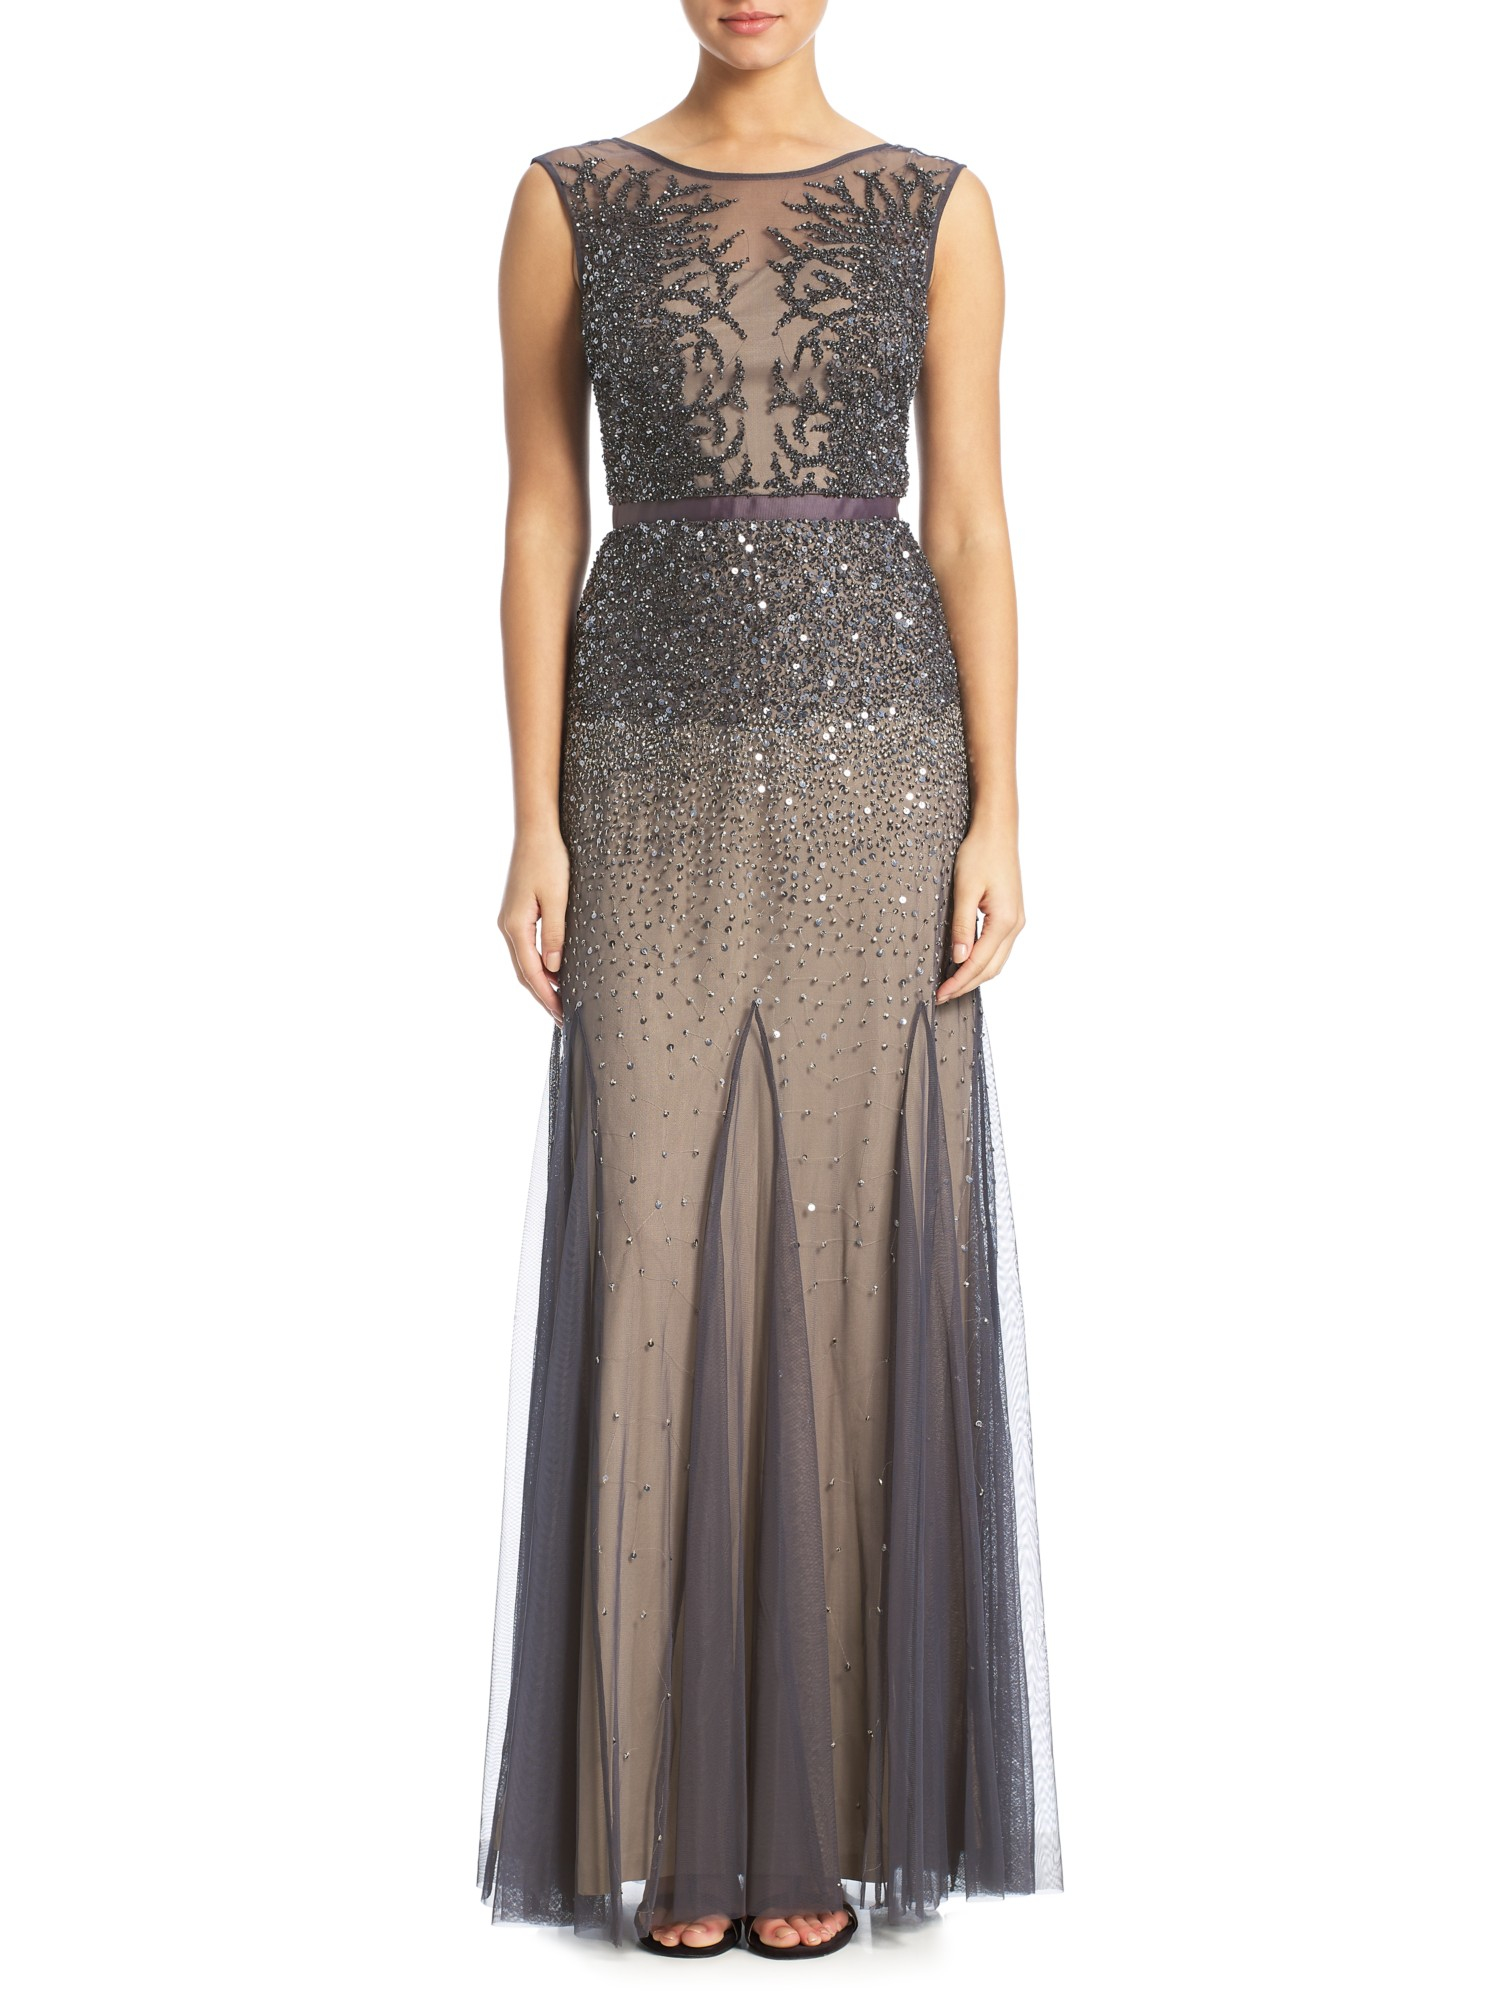 Adrianna Papell Beaded Gown With Illusion Neck in Gray - Lyst